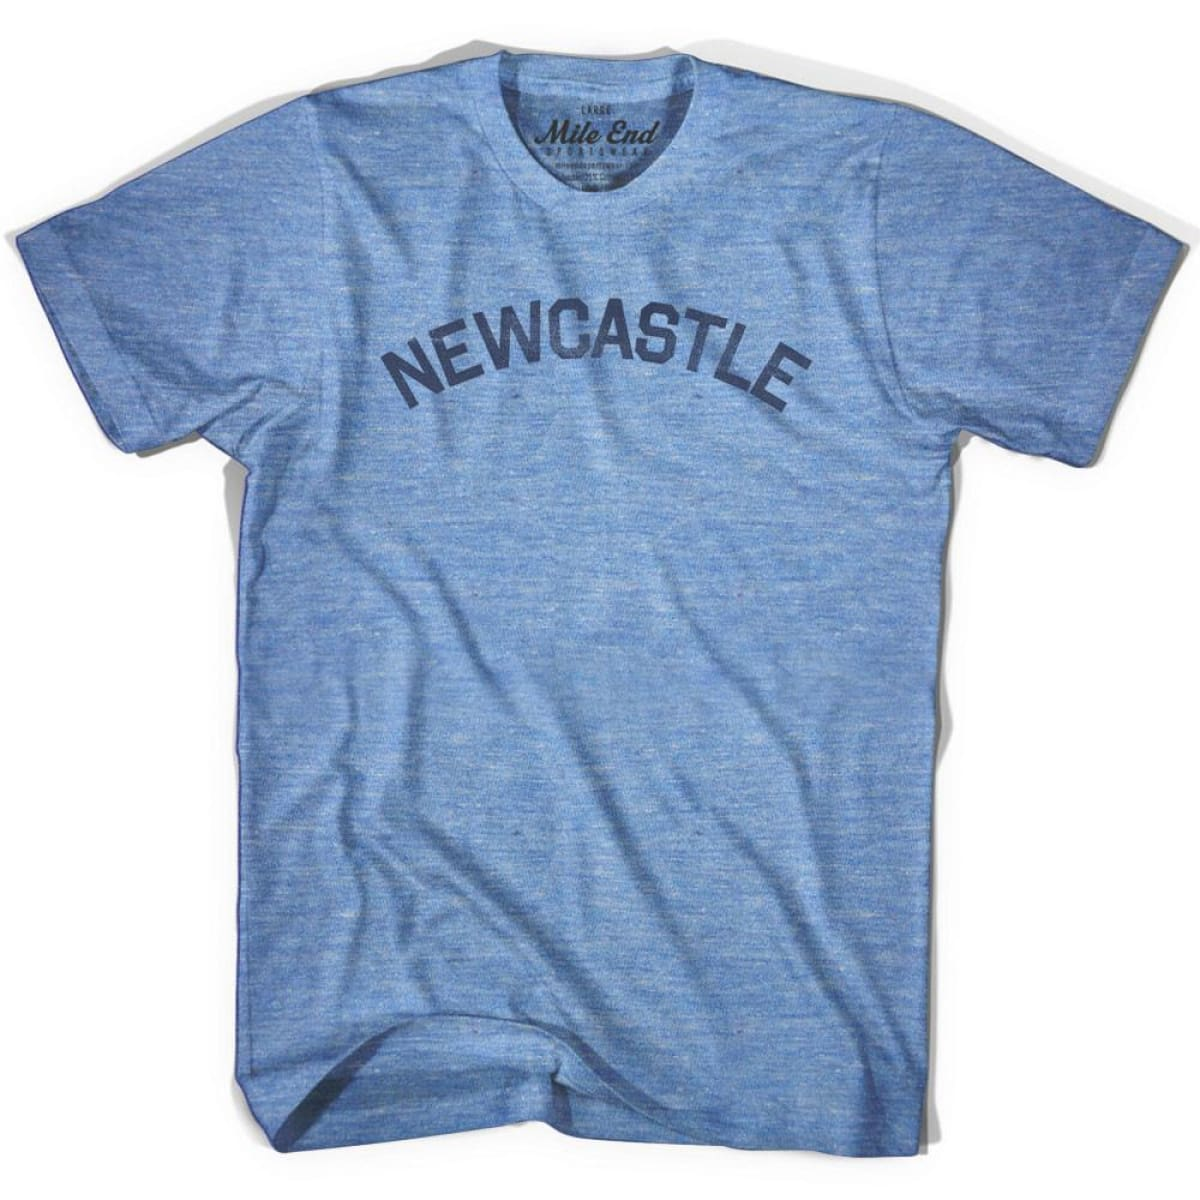 Newcastle City T-shirt - Athletic Blue / Adult X-Small - Mile End City